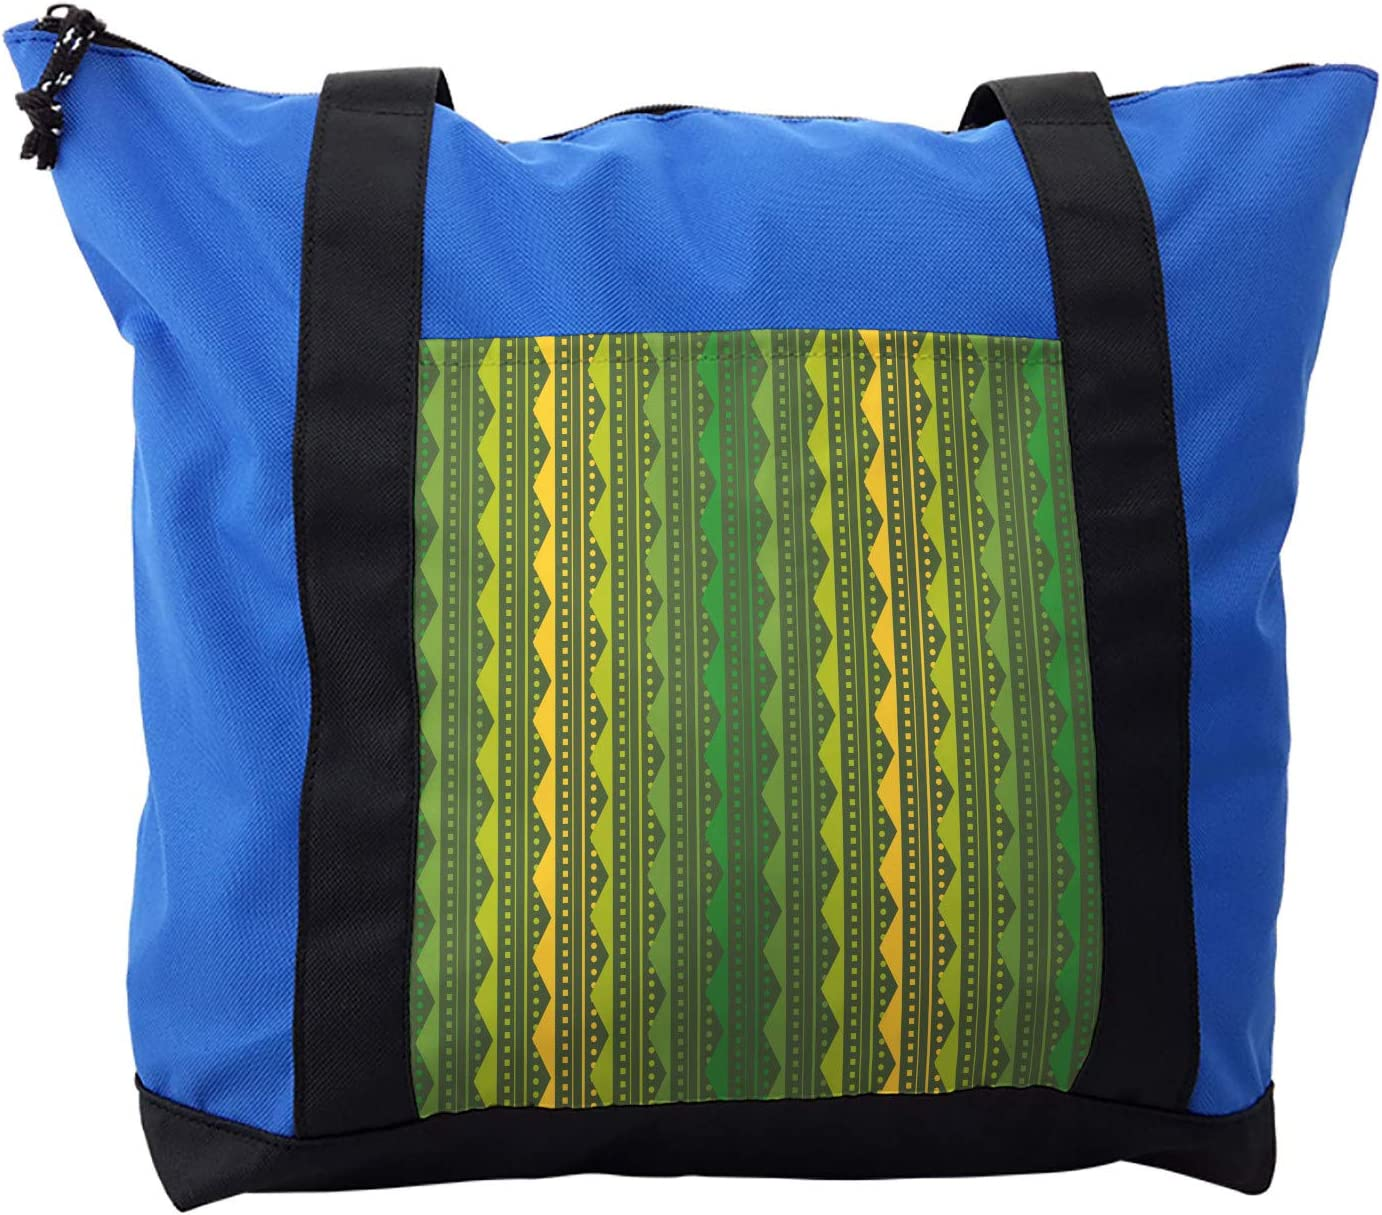 Lunarable Geometric Shoulder Bag, Stripes and Dotted Lines, Durable with Zipper